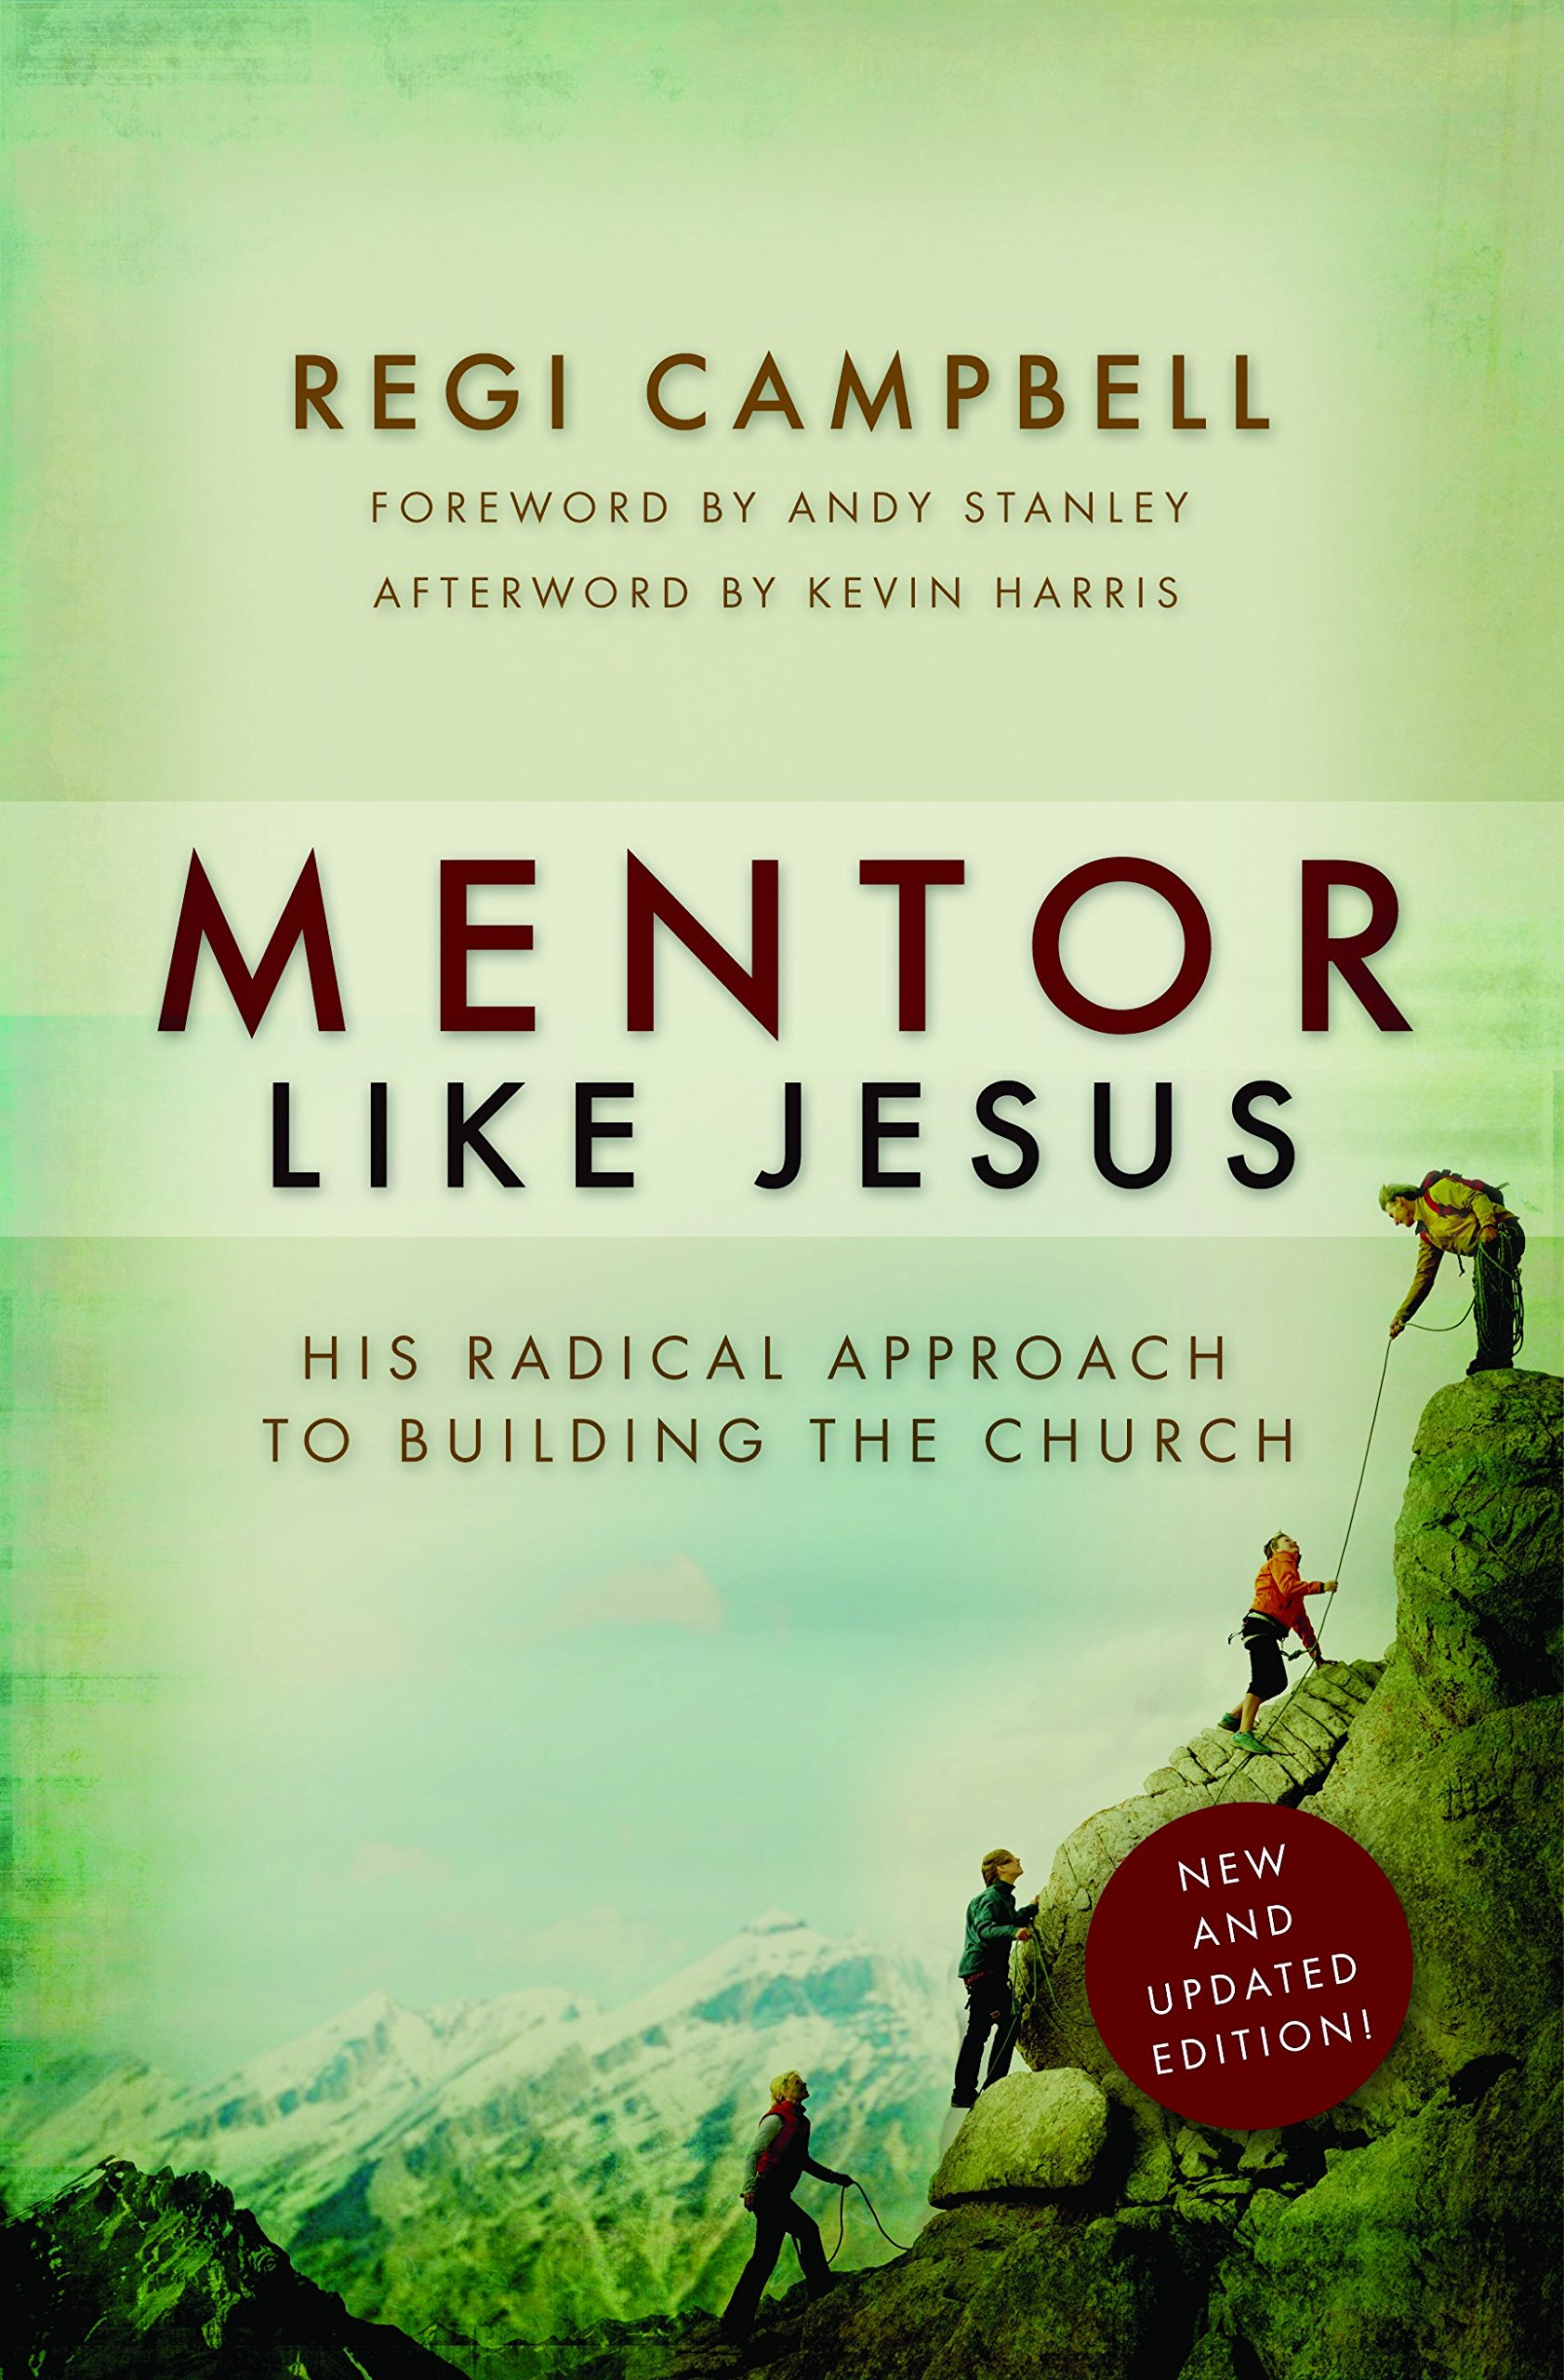 Mentor Like Jesus His Radical Approach To Building The Church Regi Campbell Andy Stanley 9780991607426 Amazon Books